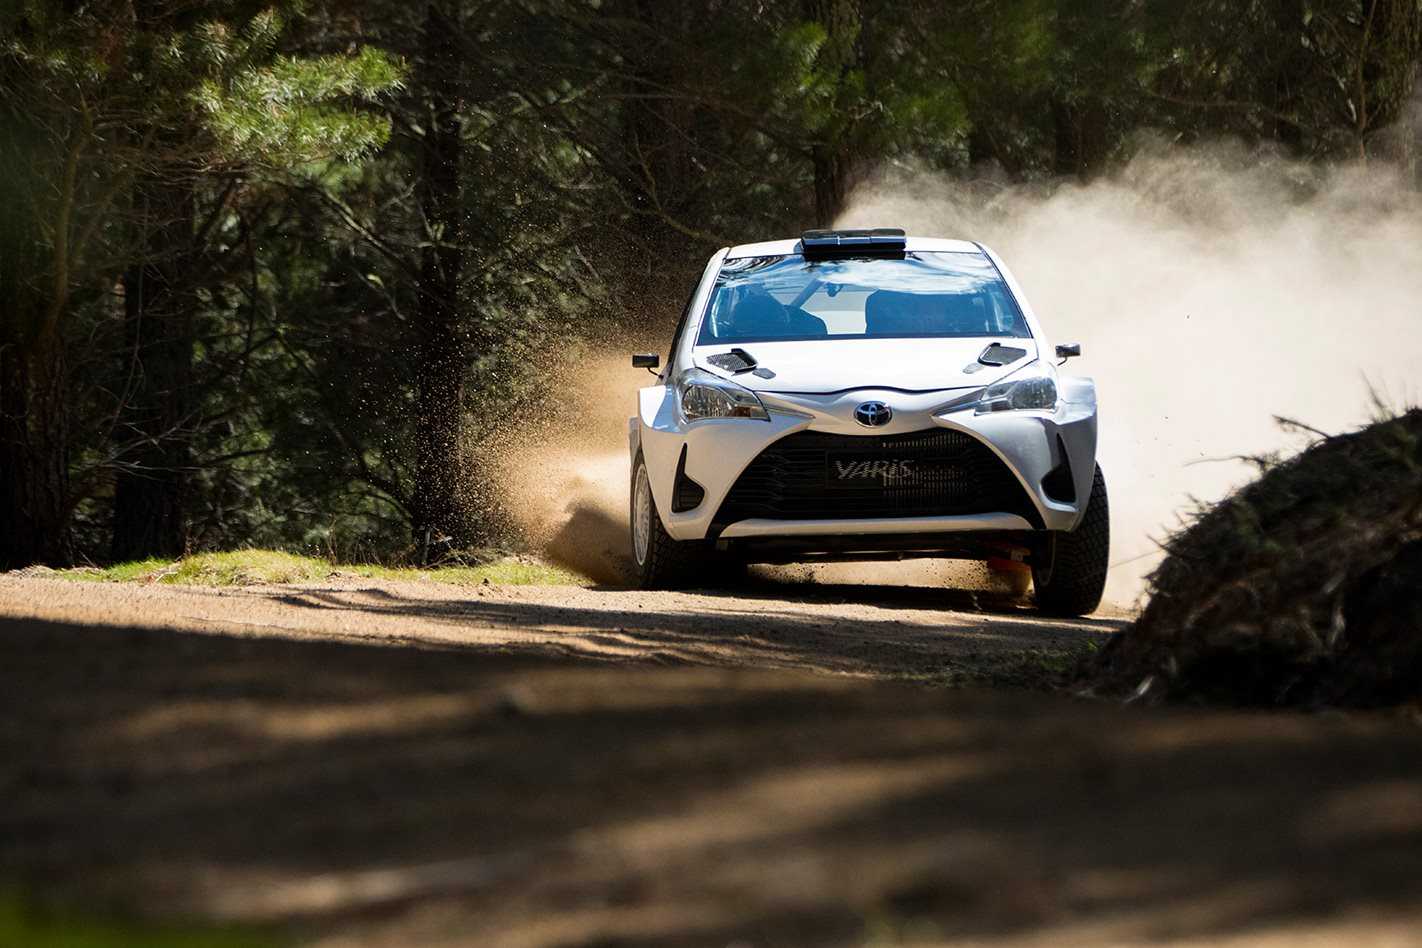 Toyota Yaris AP4 rally car offroading